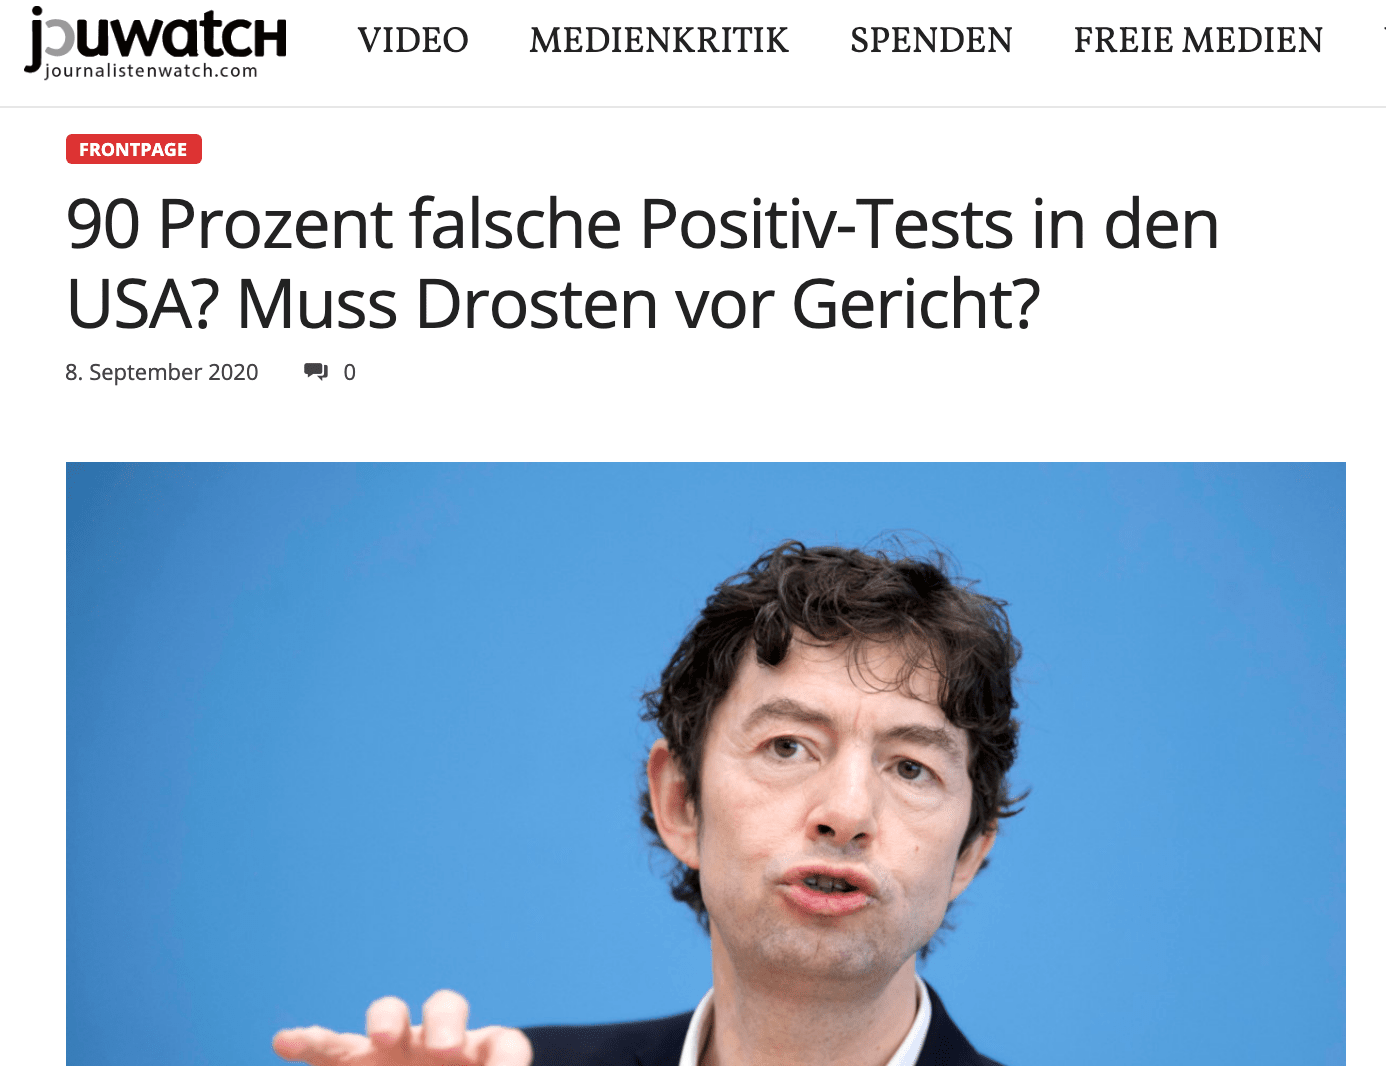 """90 Prozent falsche Positiv-Tests in den USA?"" – Das behauptet der Blog Jouwatch am 8. September."